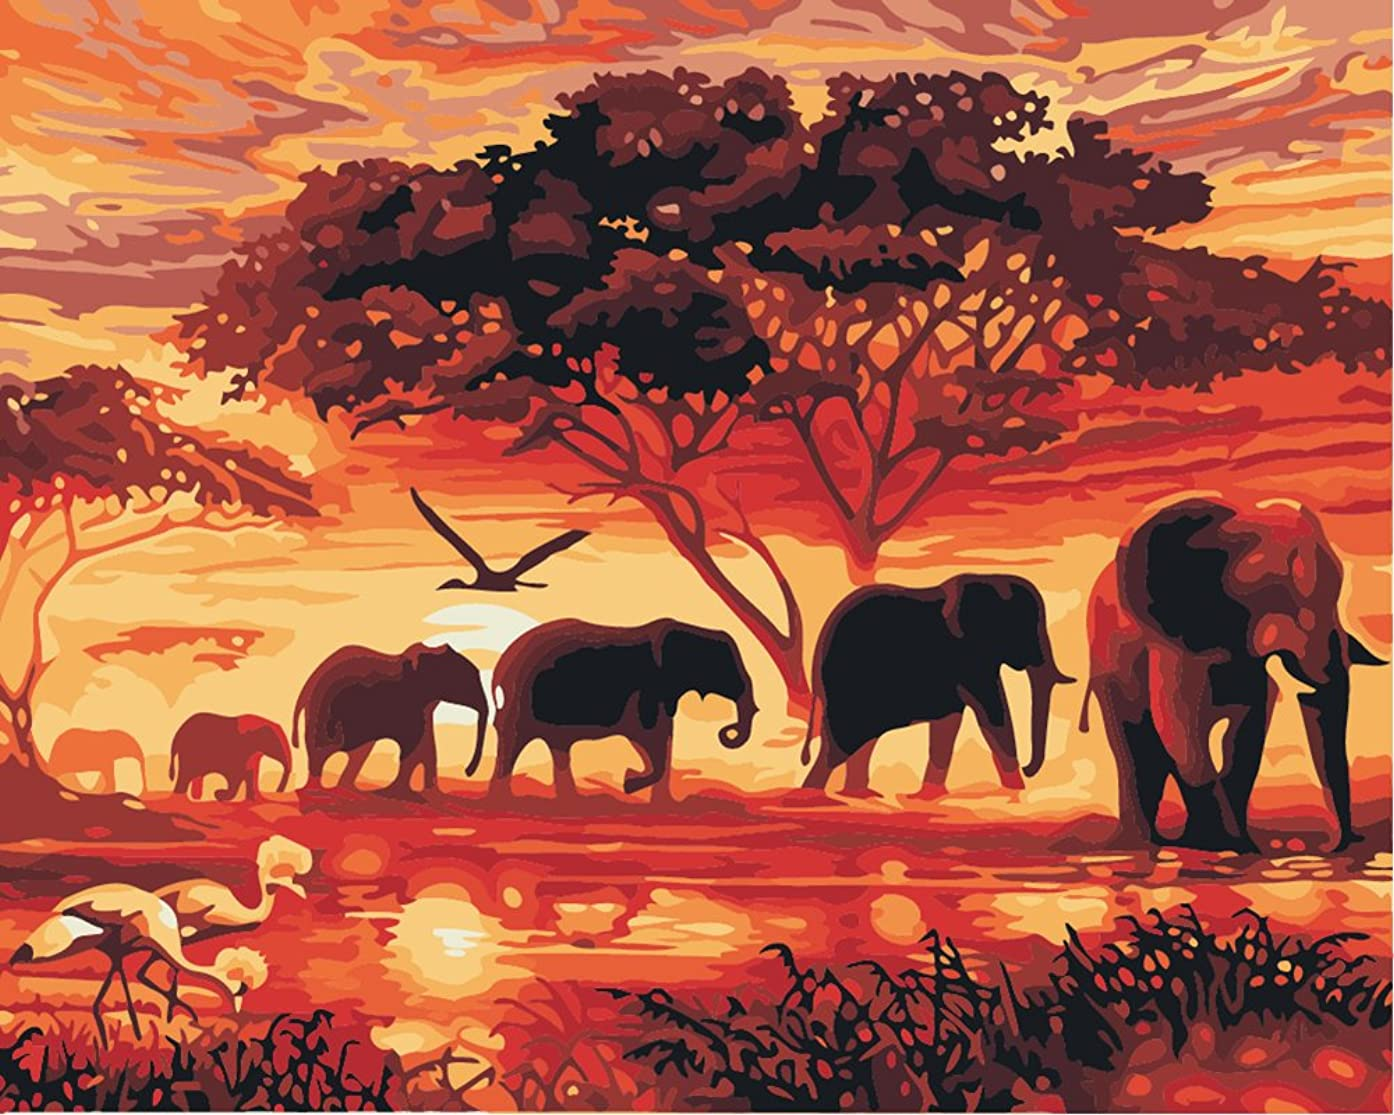 DIY Painting by Numbers for Adults, Children's Paint by Number Kits Drawing with Brushes Paint Suitable for All Skill Levels 40x50cm - Dusk Elephants Frameless